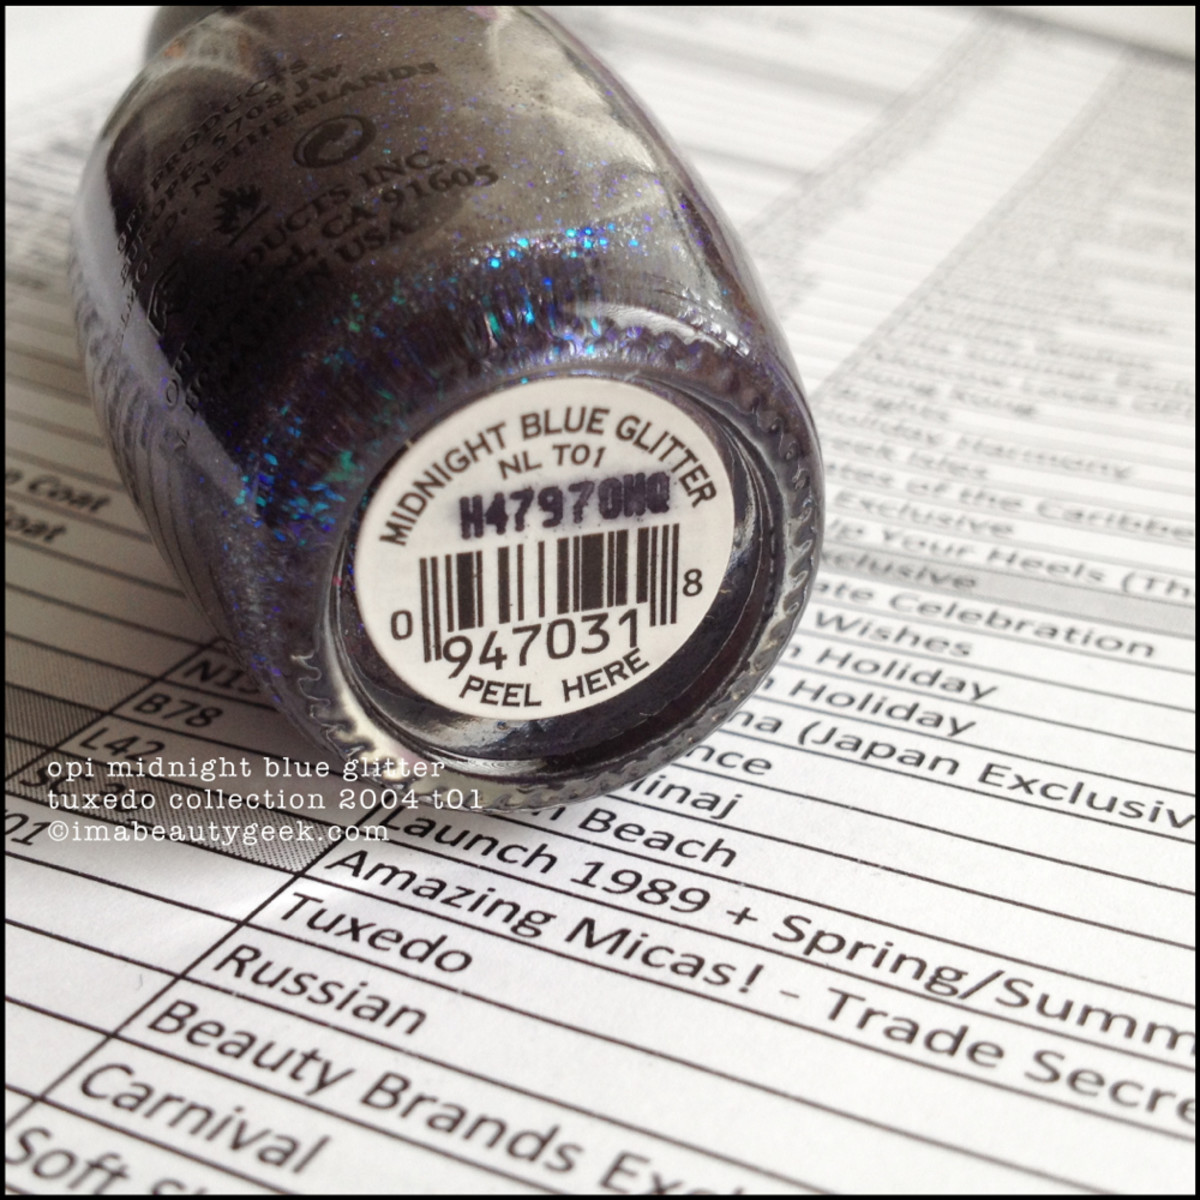 OPI Midnight Blue Glitter Black Label OPI Tuxedo Collection 2004 Beautygeeks